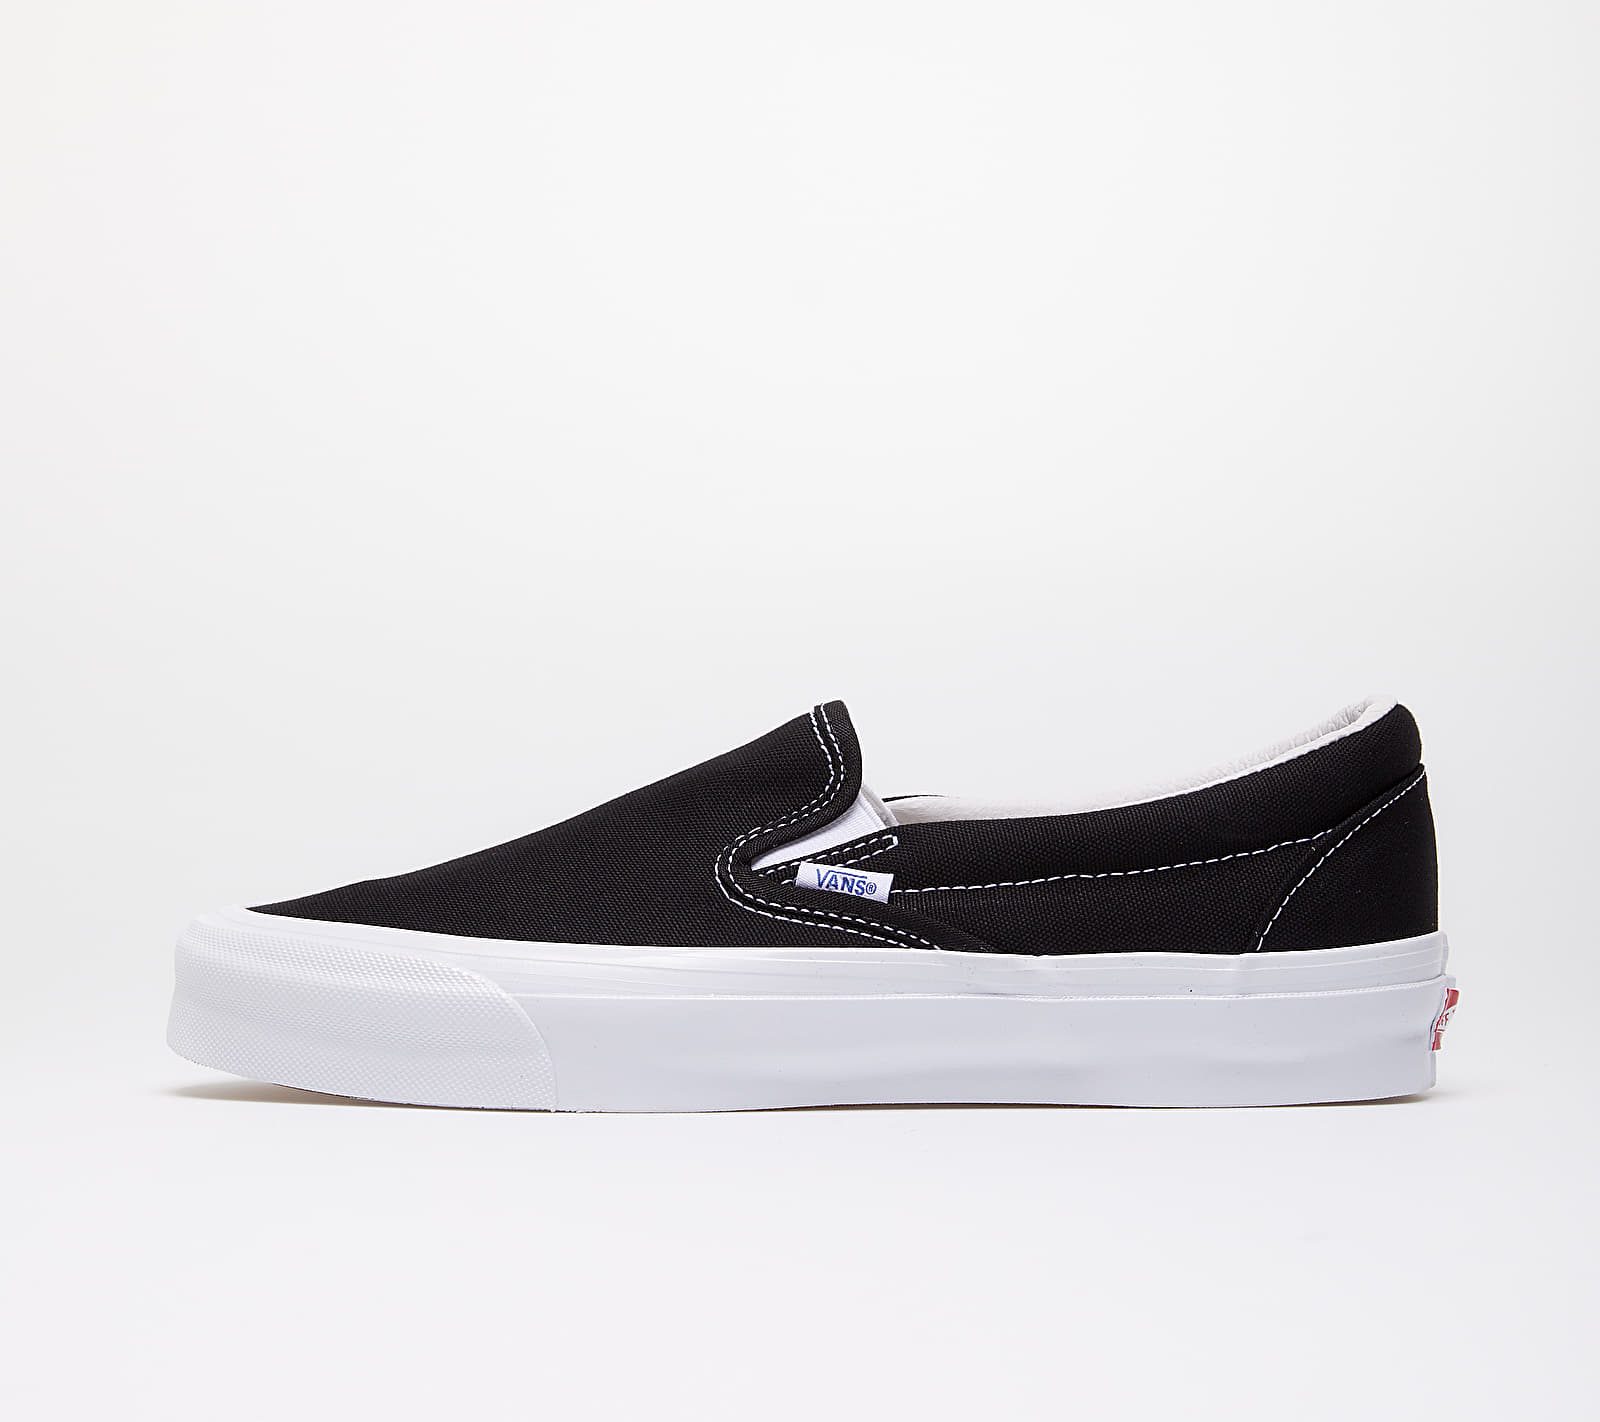 Vans OG Classic Slip-On (Canvas) Black/ True White EUR 36.5